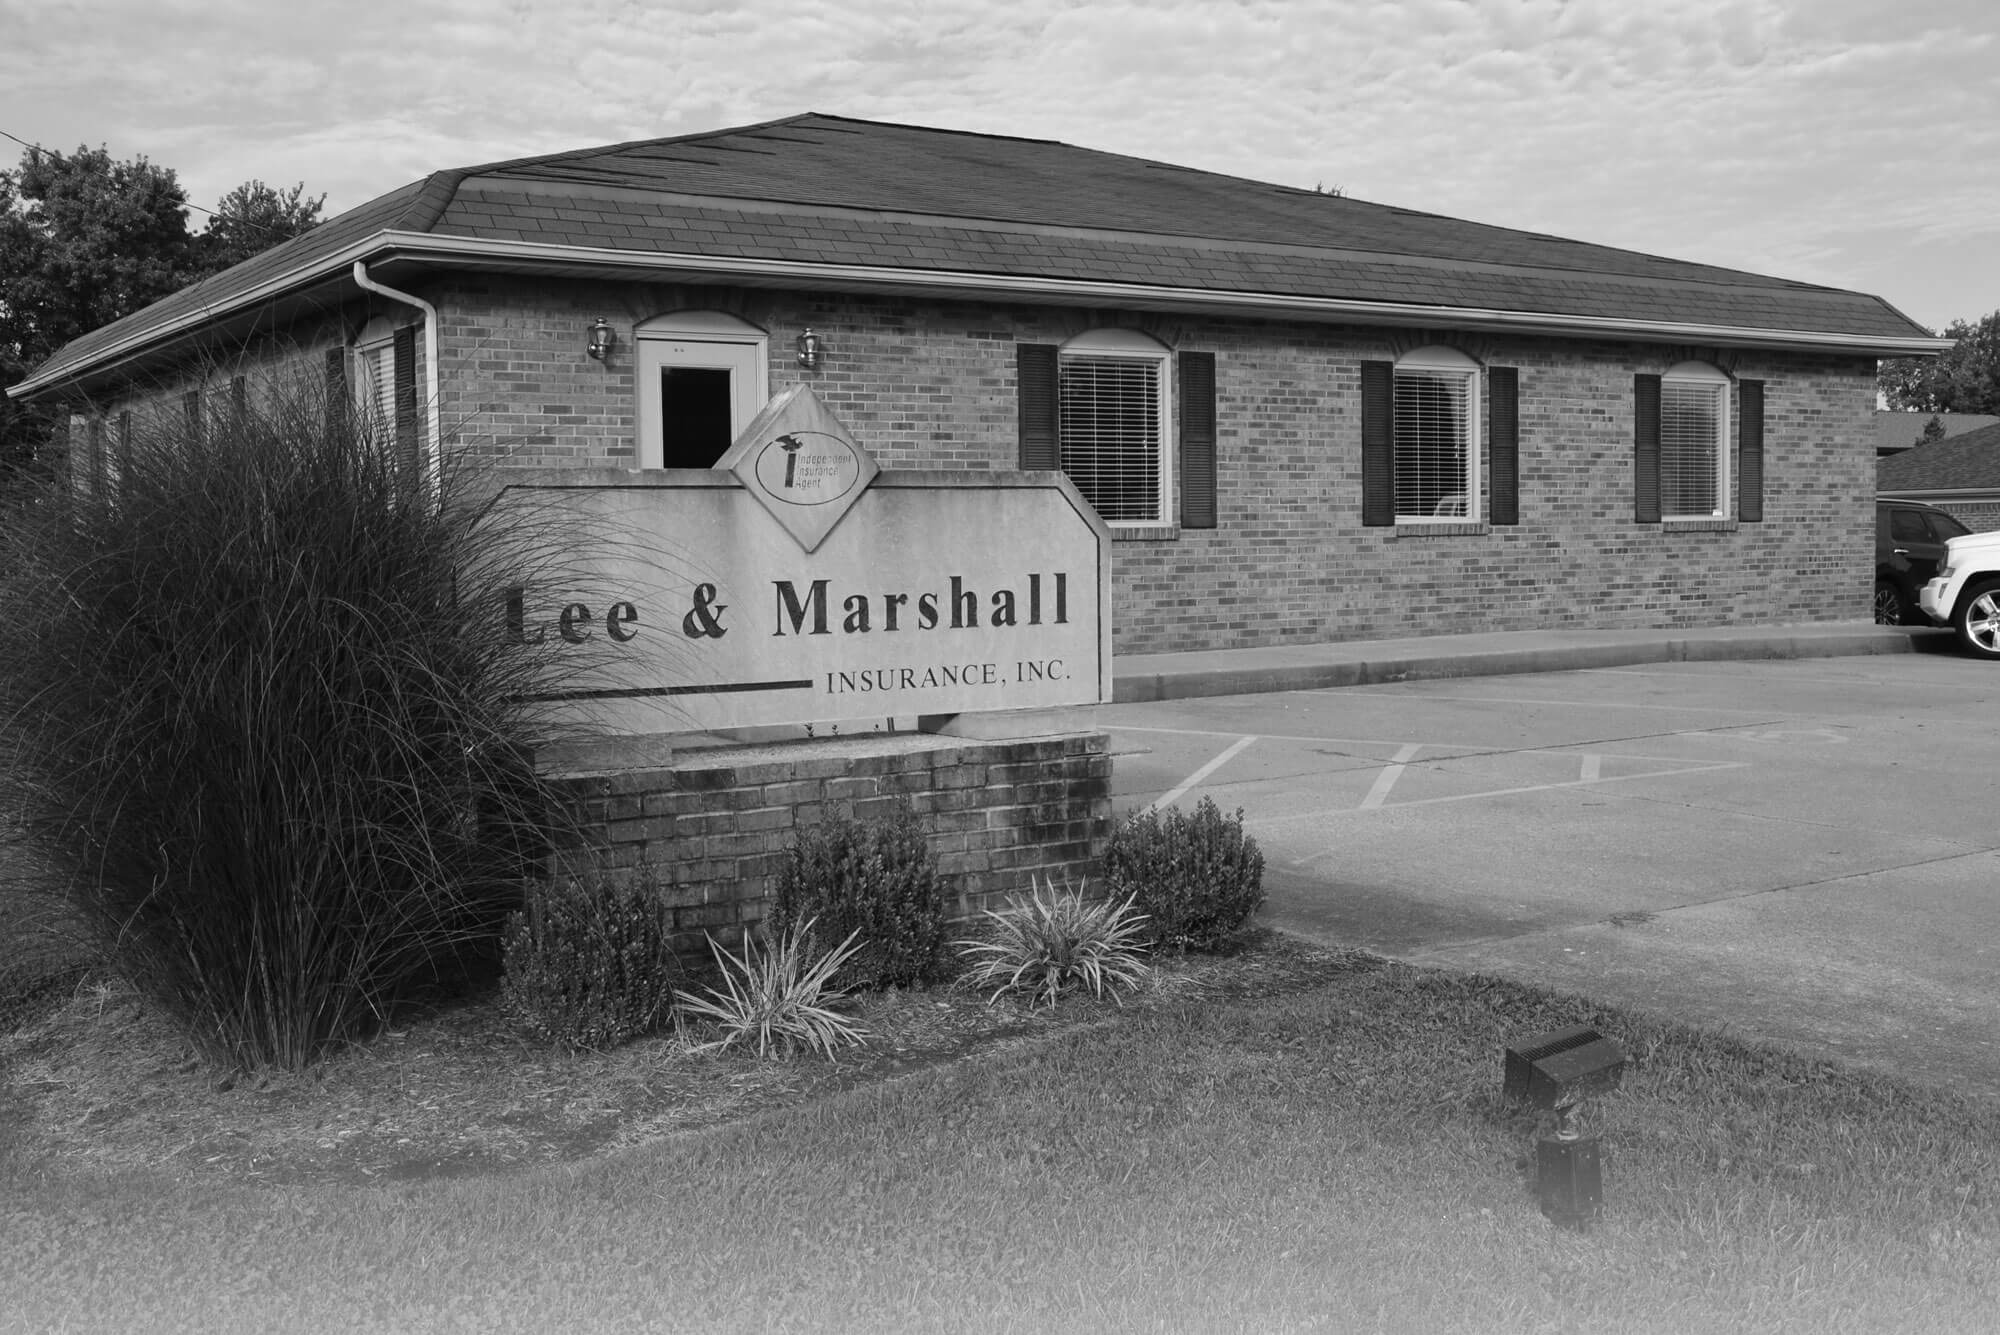 Lee & Marshall Building Exterior - B&W